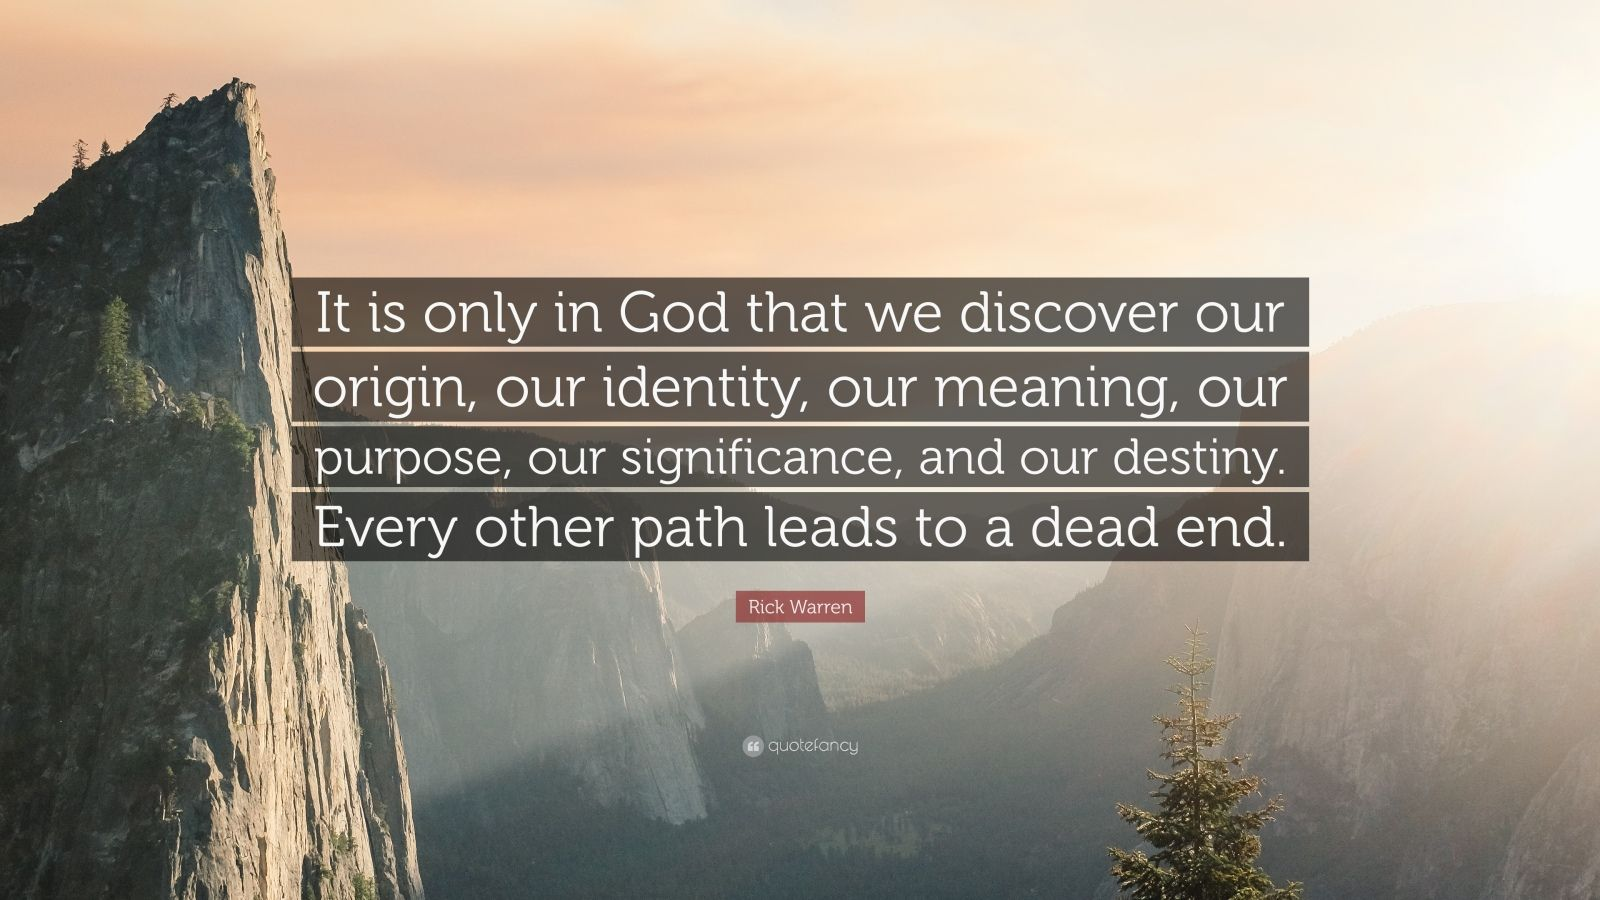 """Rick Warren Quote: """"It is only in God that we discover our origin, our identity, our meaning, our purpose, our significance, and our destiny. Every other path leads to a dead end."""""""